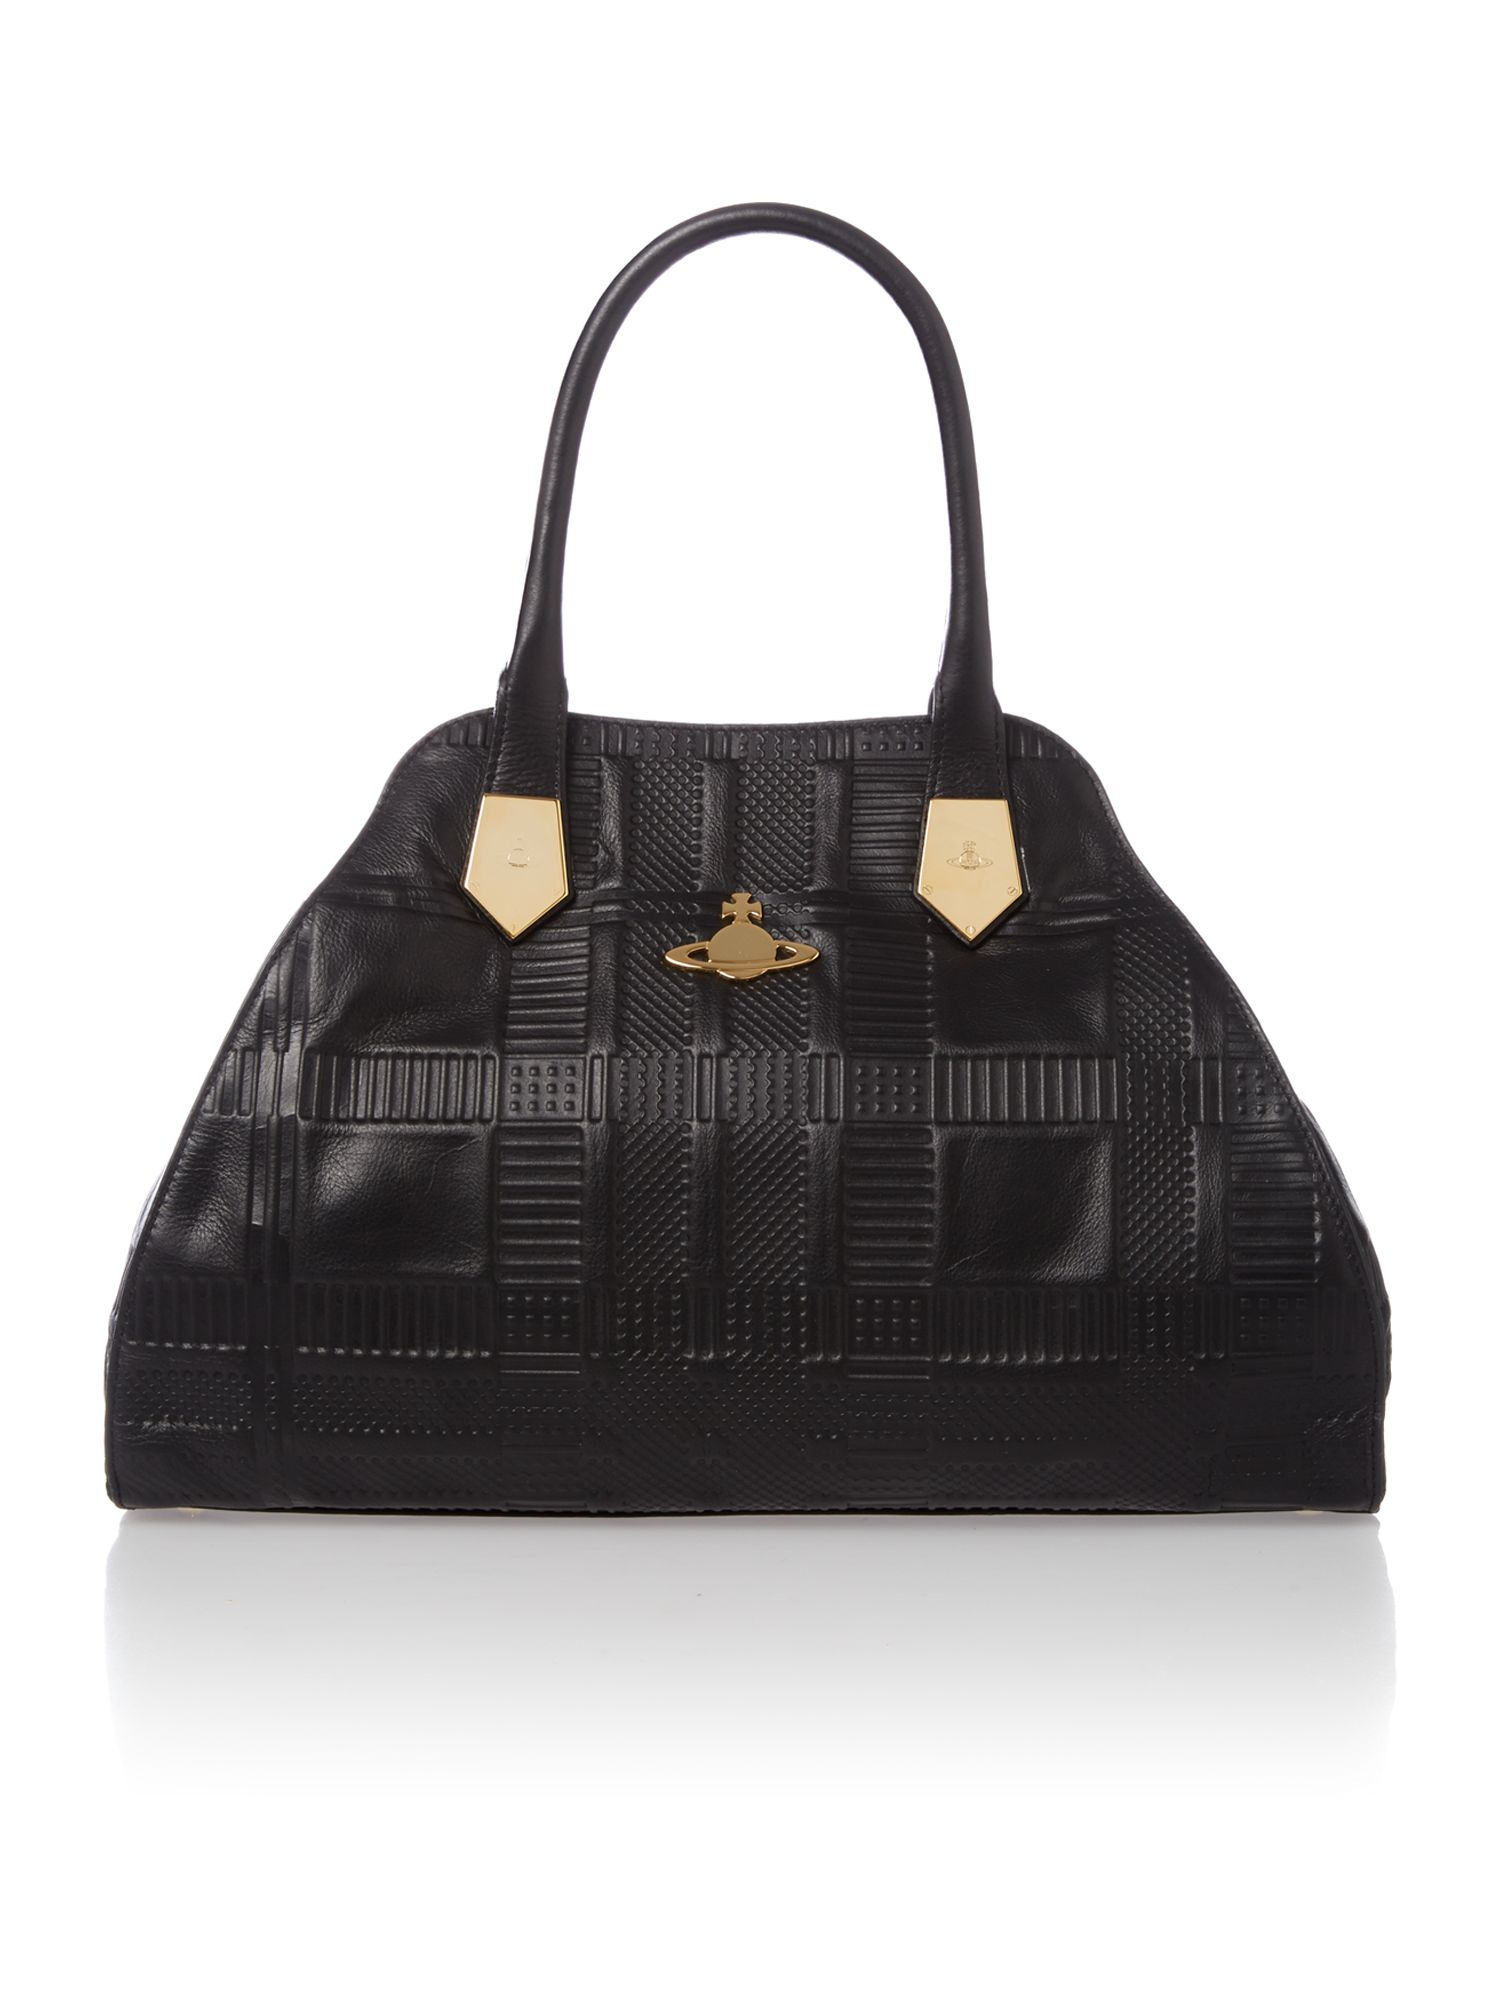 Embossed Tartan black tote bag